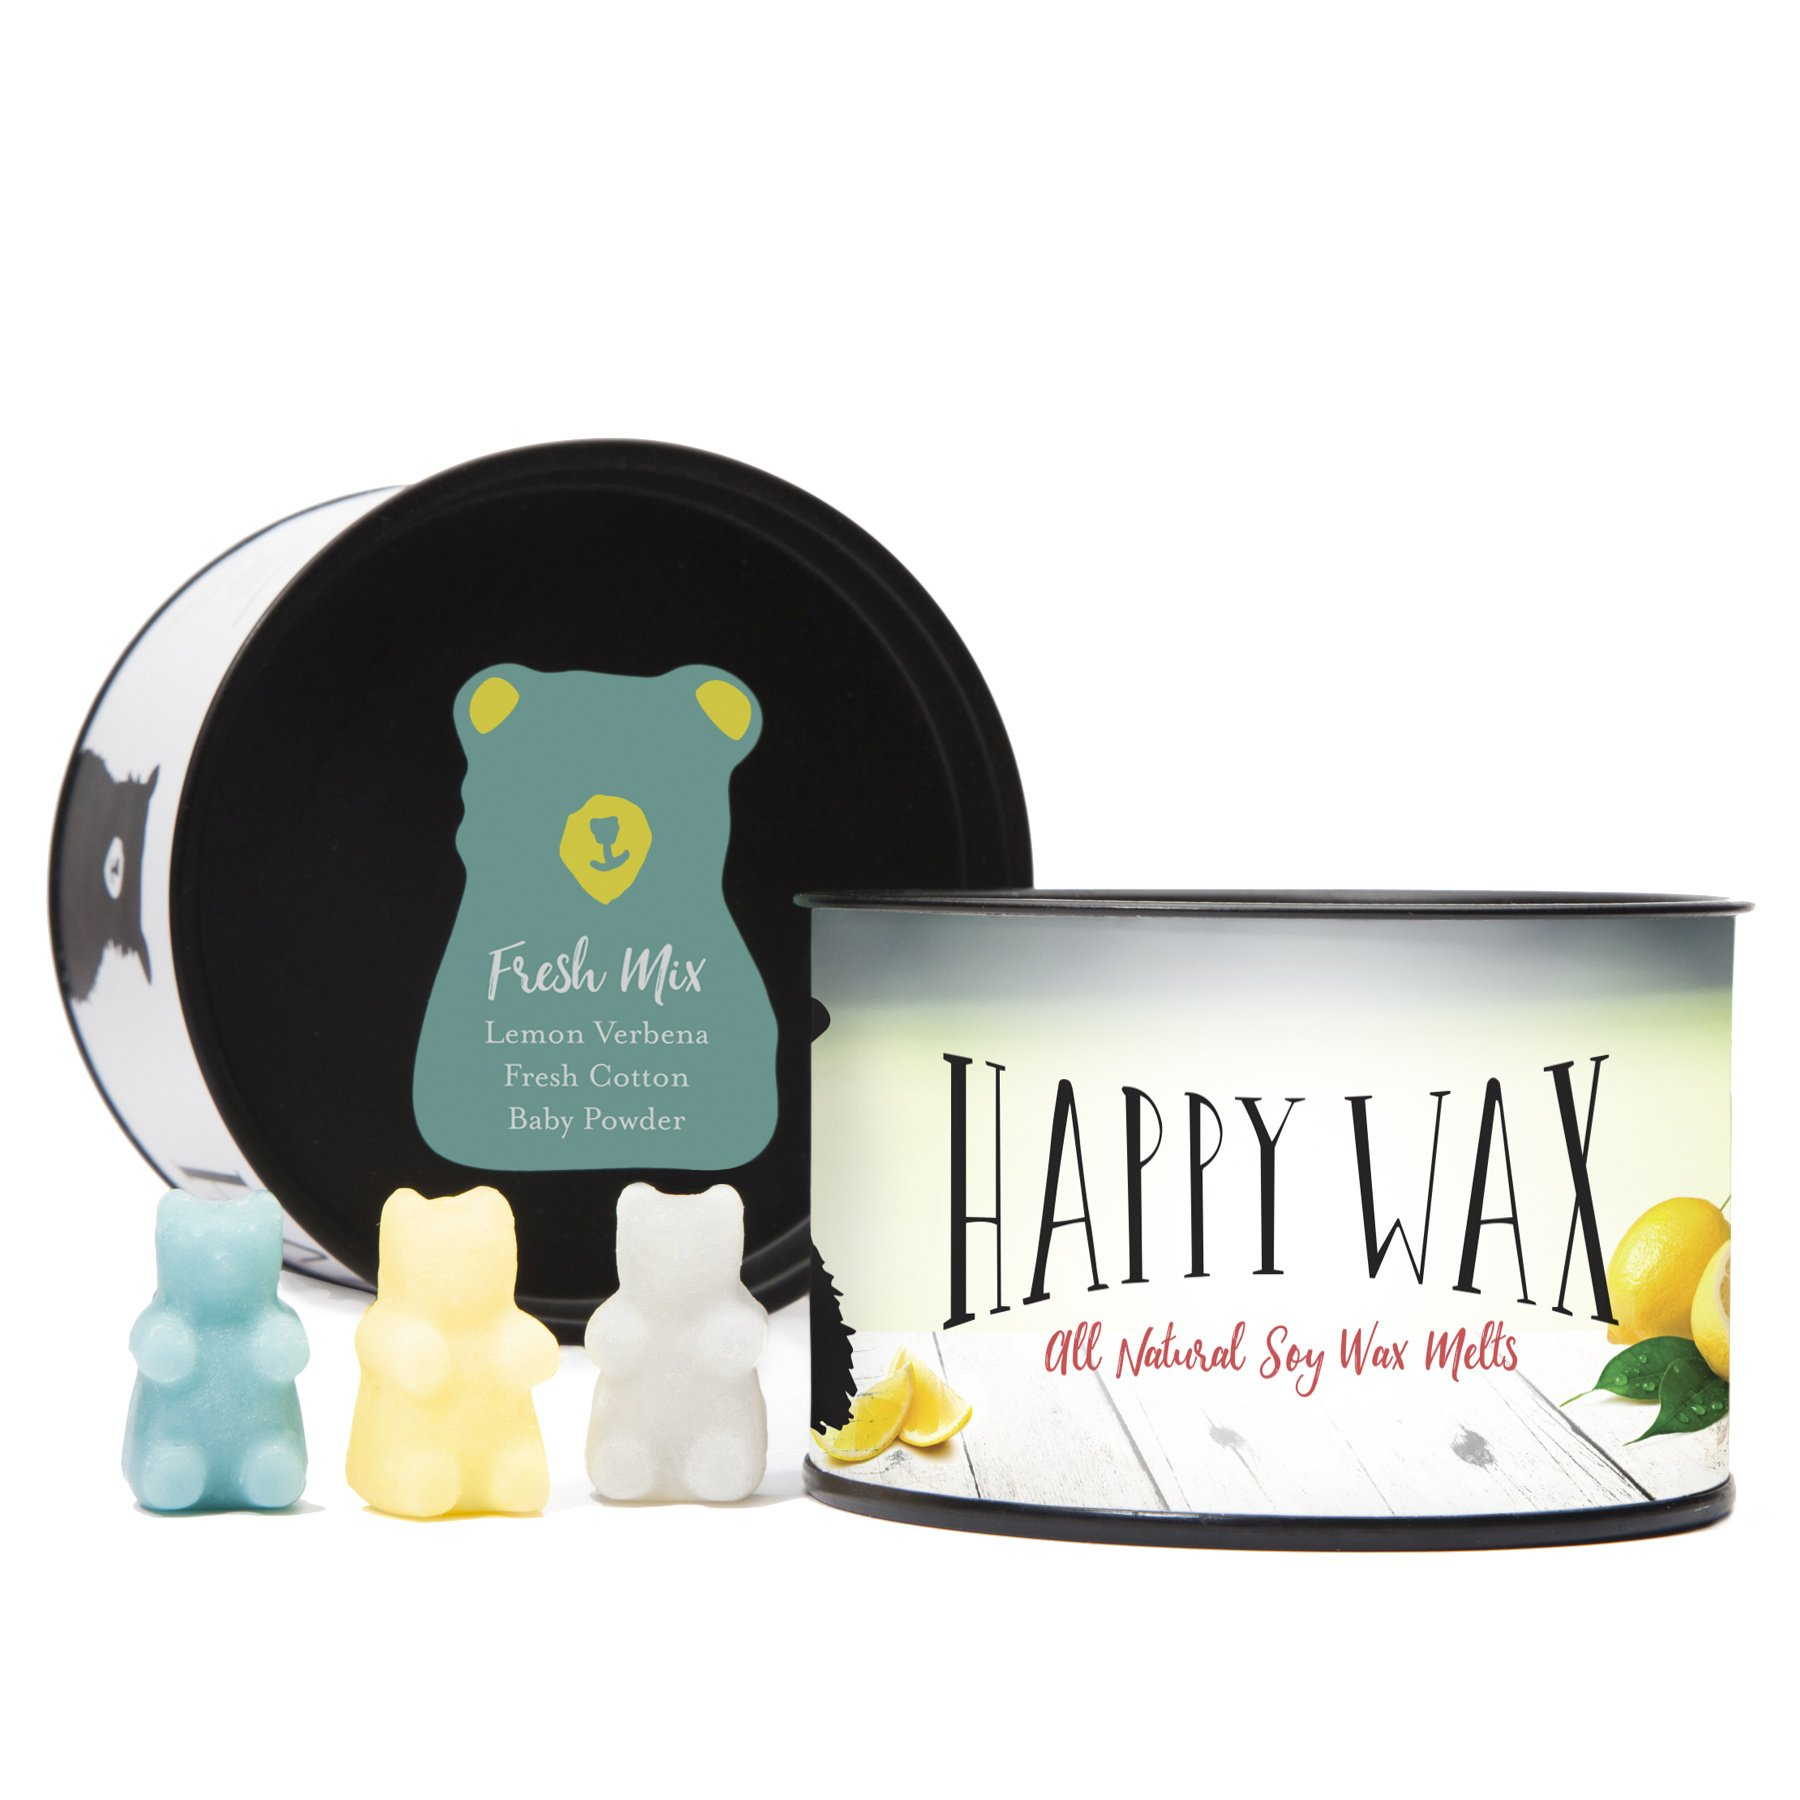 Happy Wax - Four Mixed Tins Wax Melt Gift Set - Includes 3.6 Oz Each of Our Scented Soy Wax Melts in Our Cocktail Mix, Fresh Mix, Citrus Mix, and Spa Day Mix! by Happy Wax (Image #4)